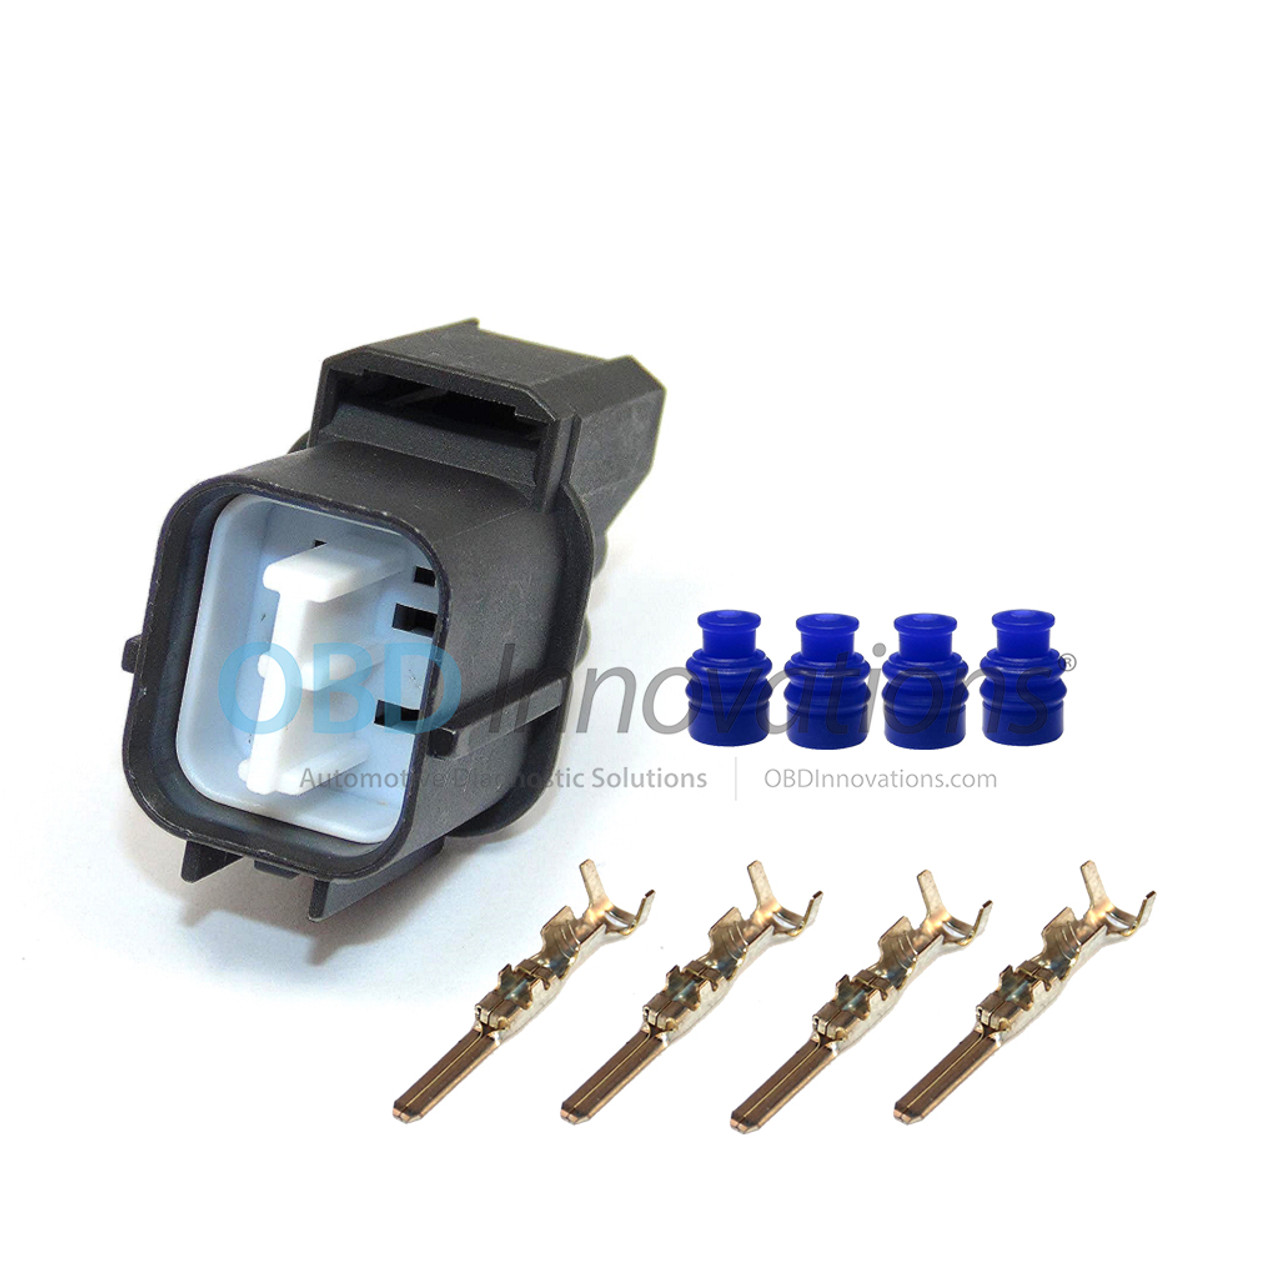 4 Wire O2 Sensor Male Connector Kit For Honda Obd Innovations